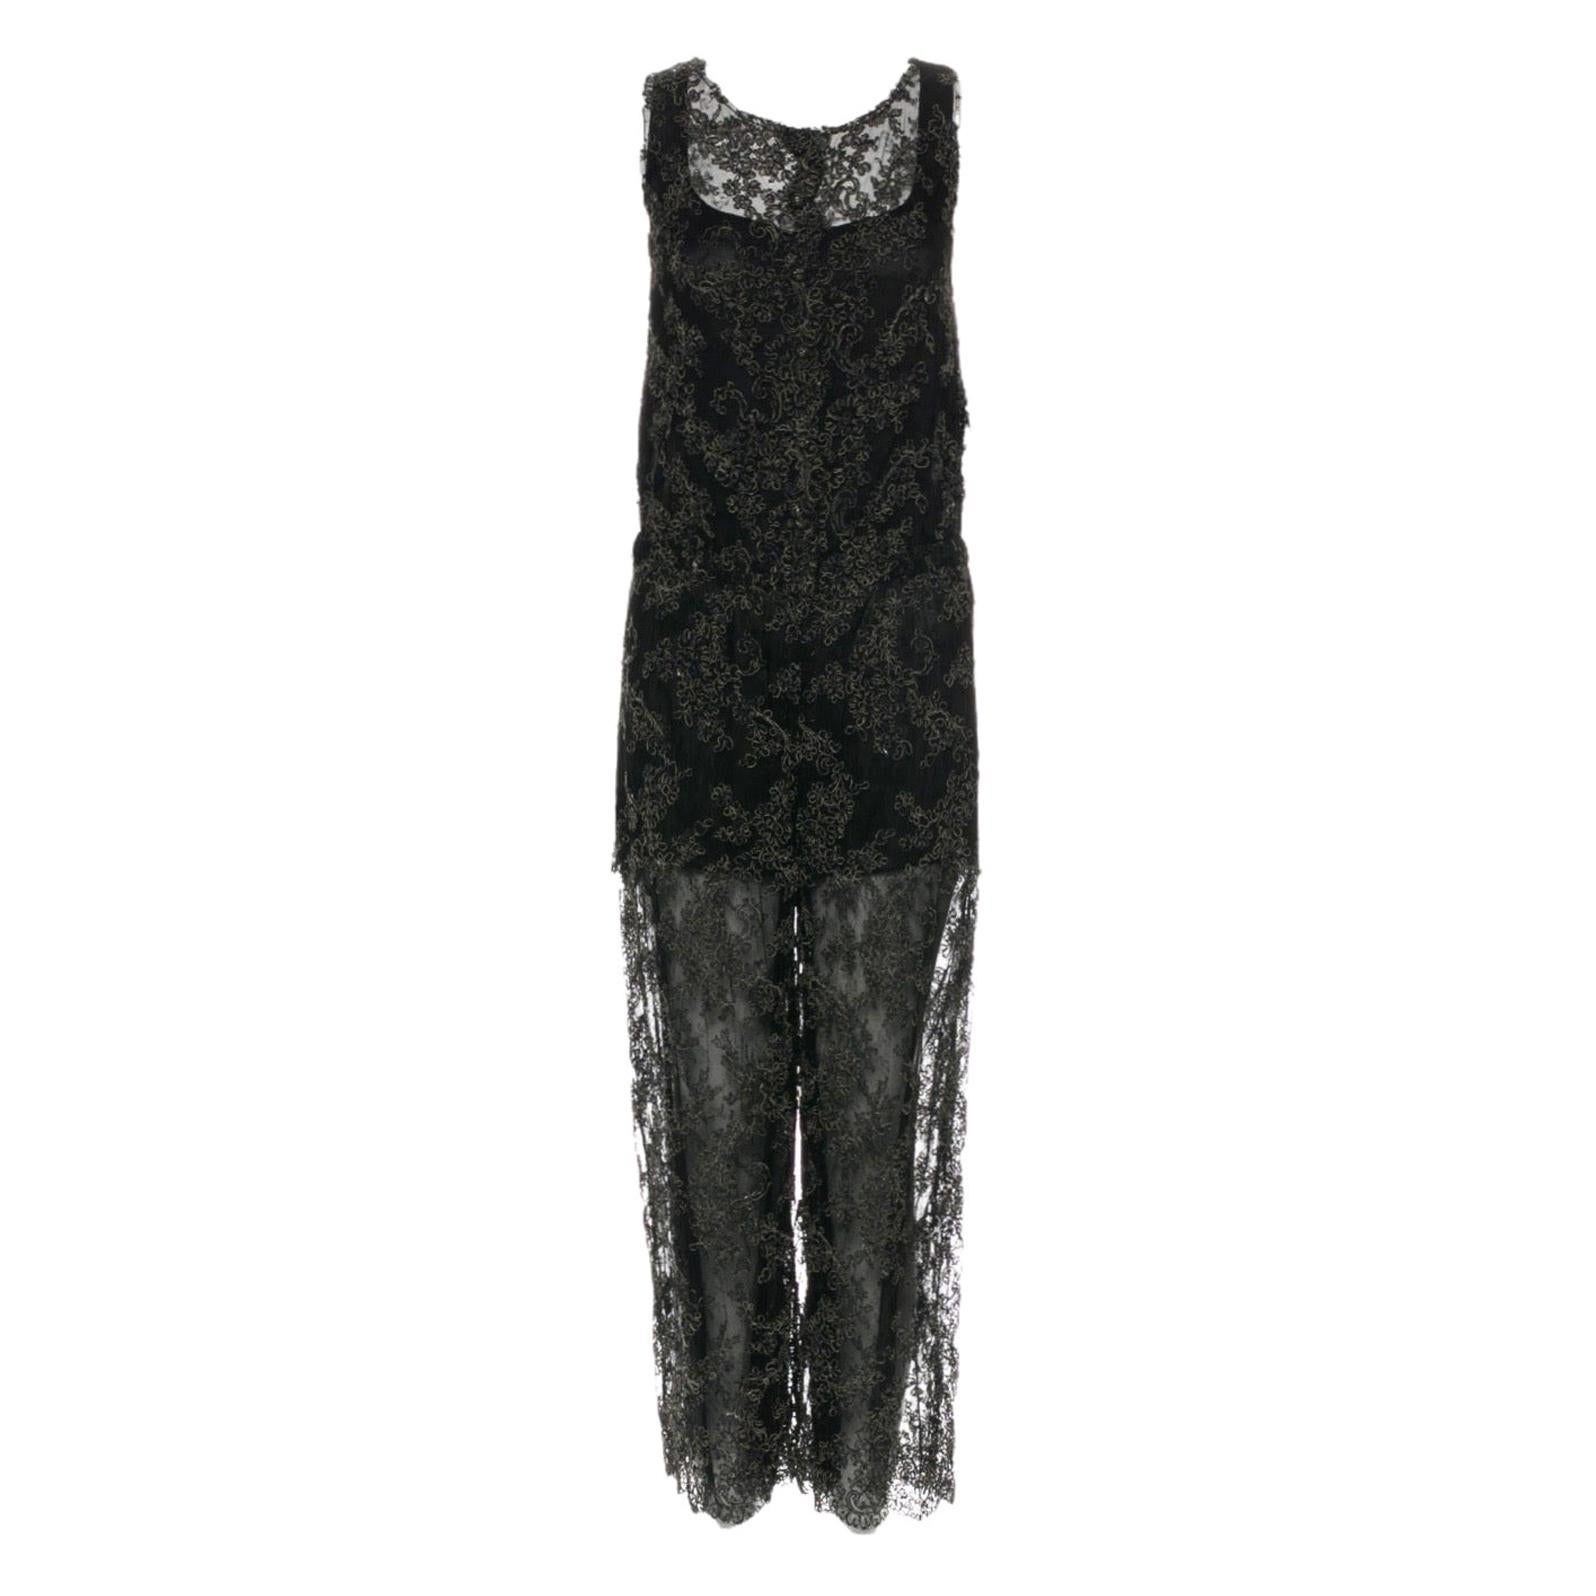 NEW Chanel Black Lace Embroidery Evening Jumpsuit Overall